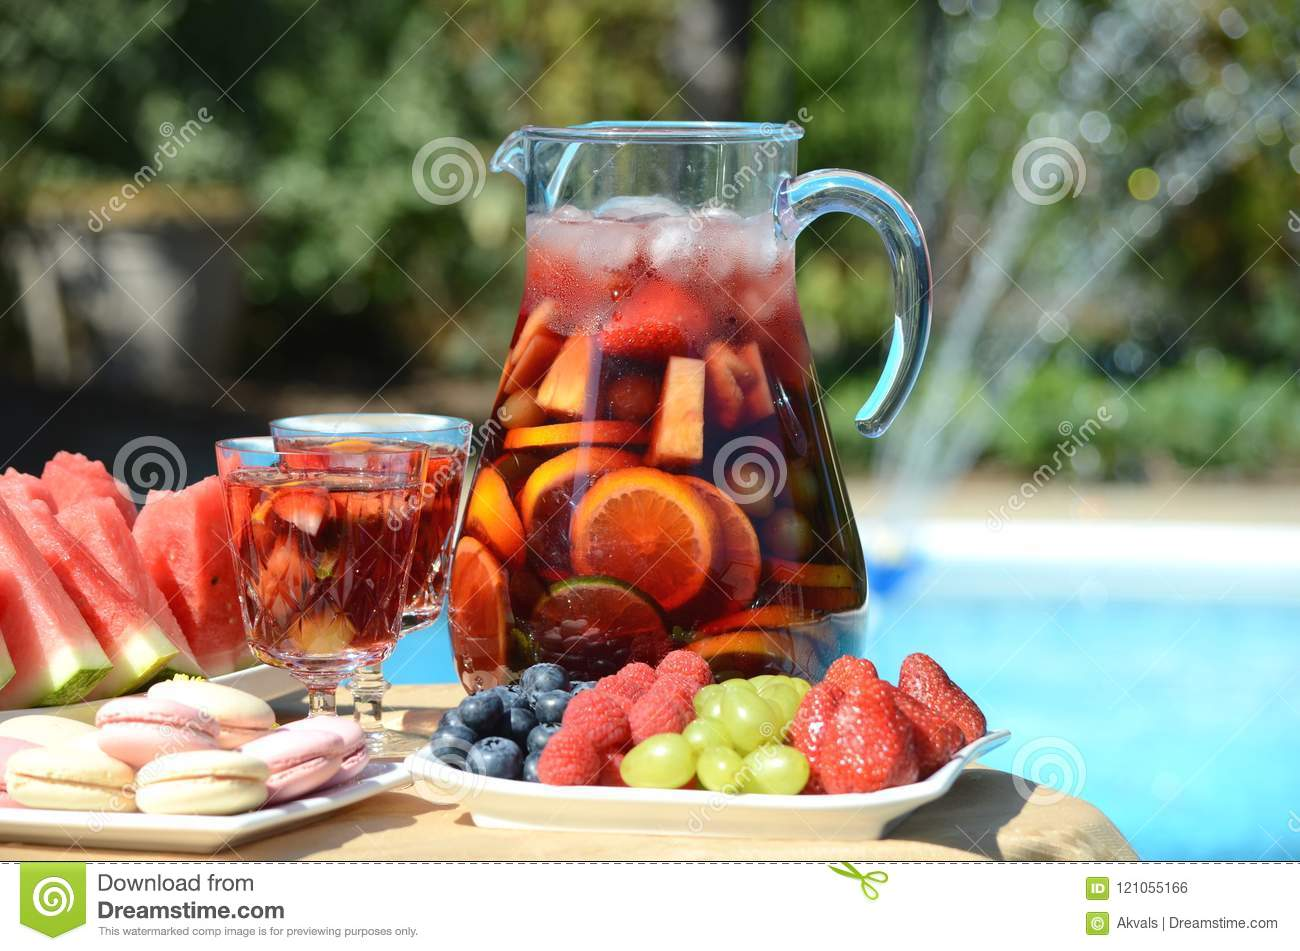 Pool Party With Sangria And Cold Alcoholic Cocktails By The Swimming Pool Stock Photo Image Of Fruit Drinks 121055166